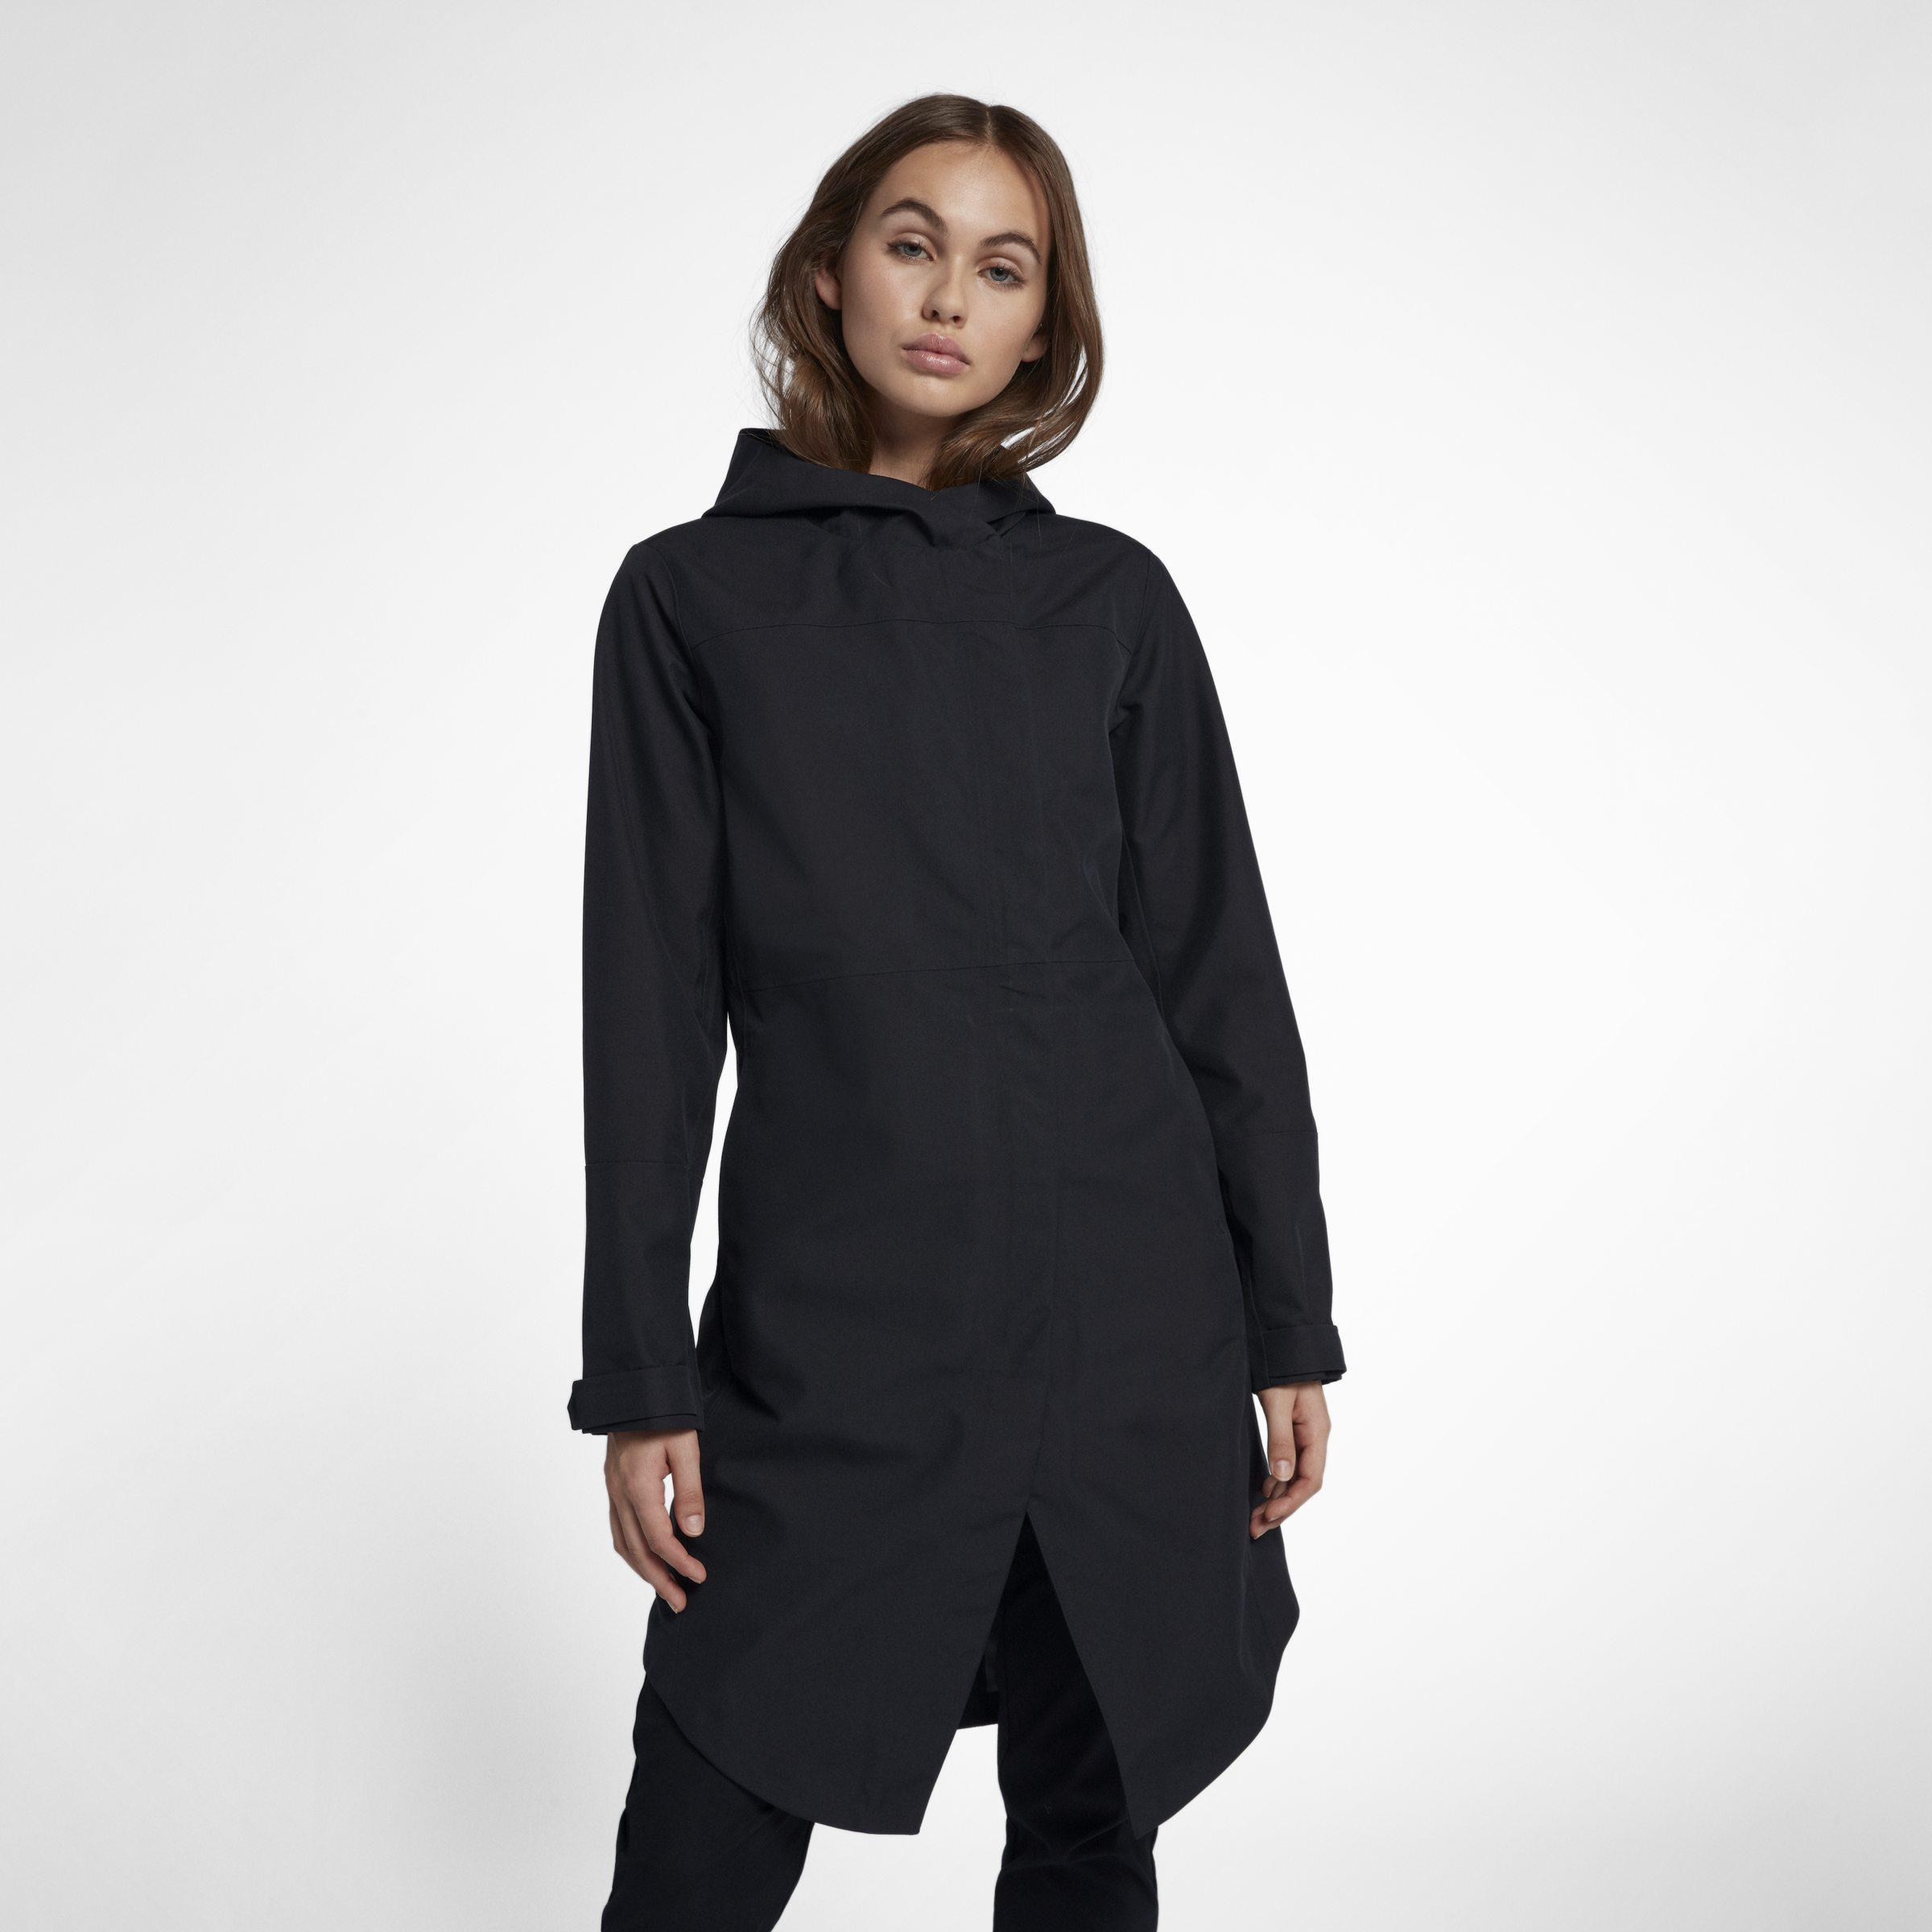 latest collection best collection newest style of Nike Hurley Winchester City Trench Coat in Black - Lyst